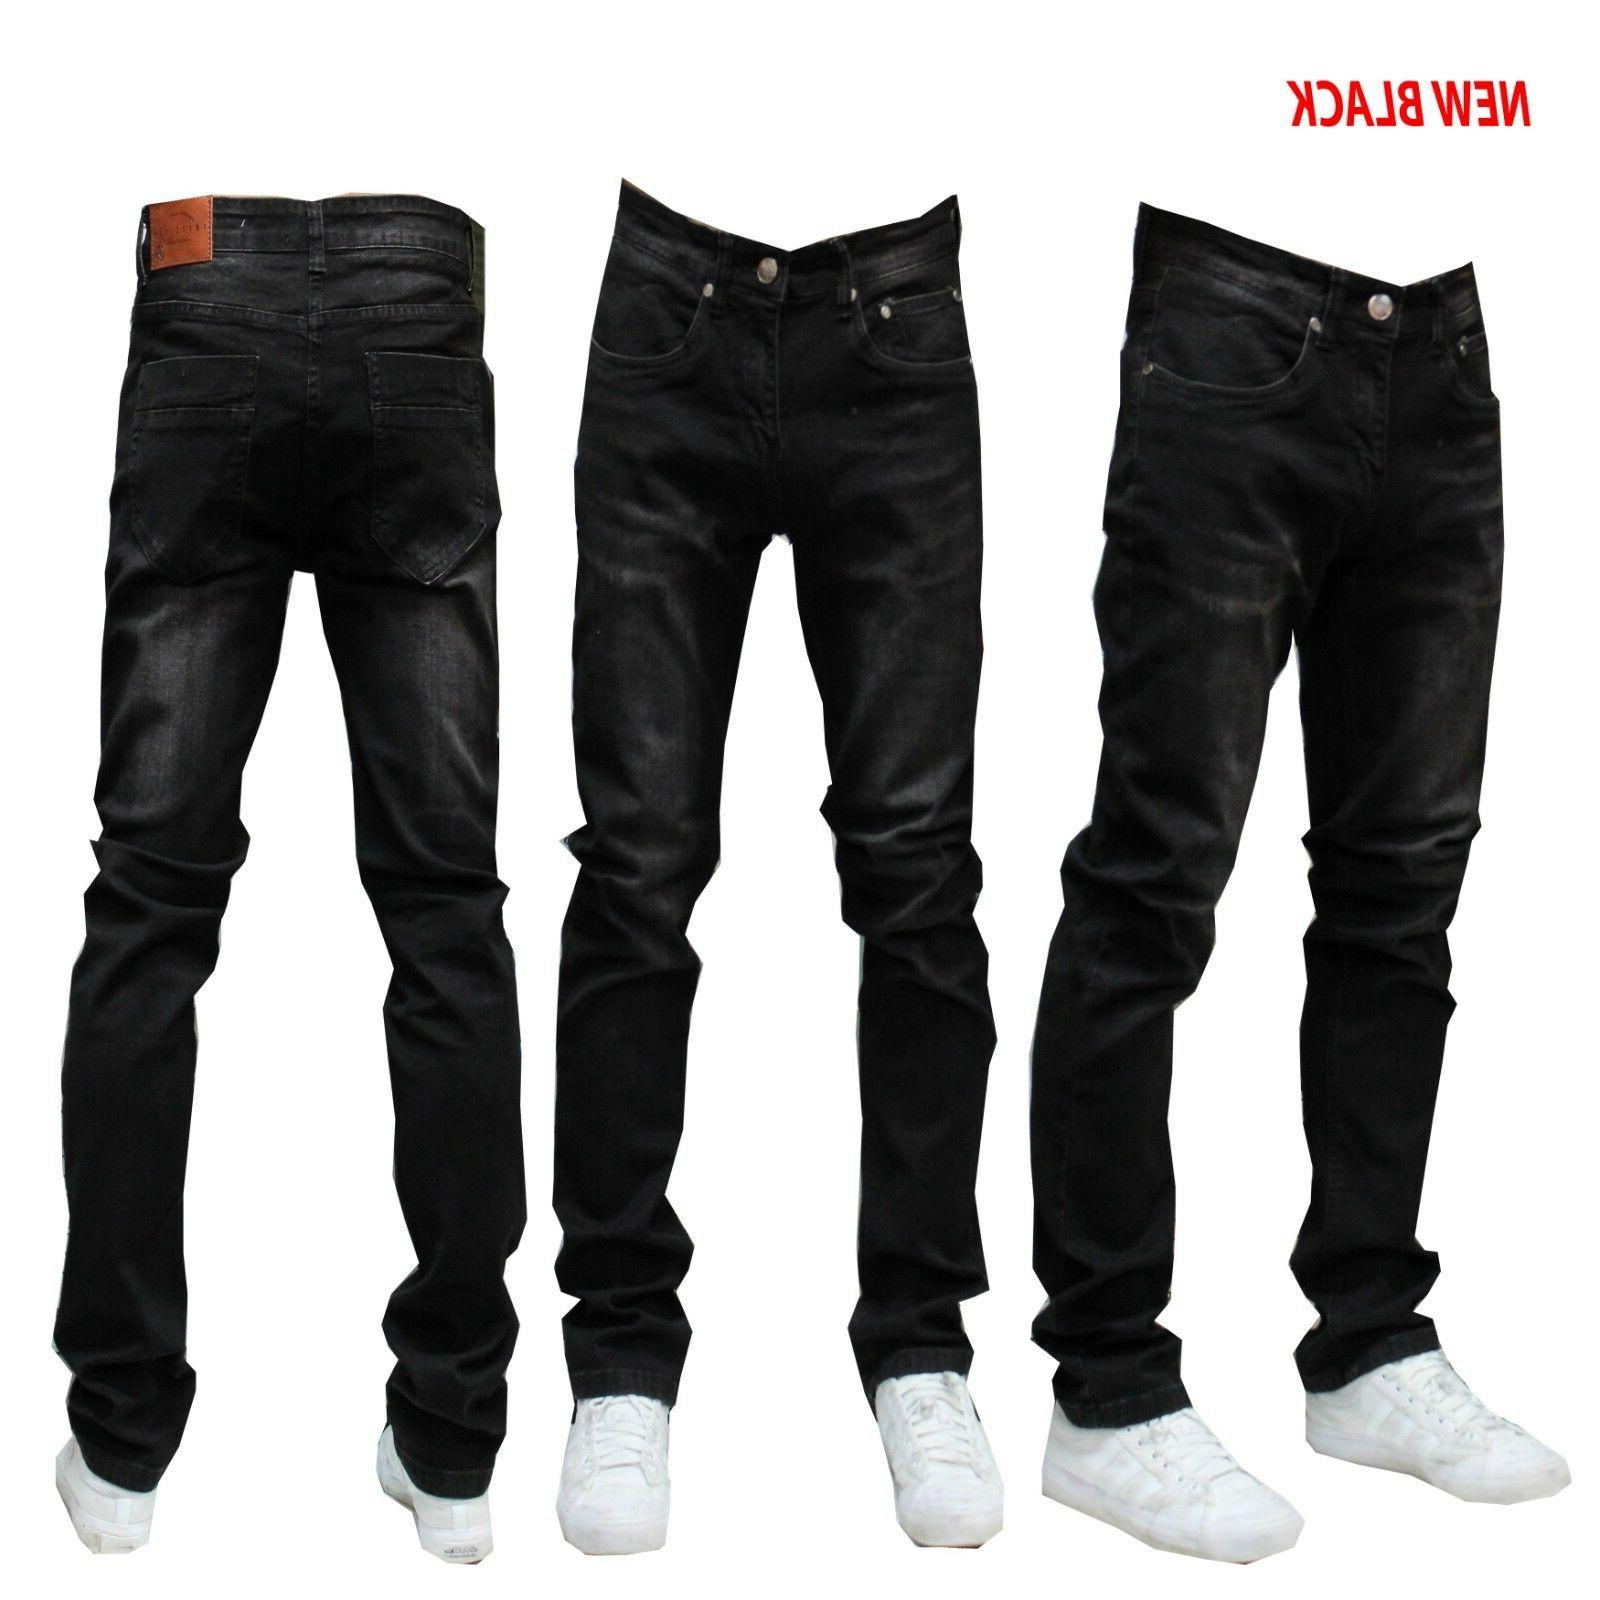 MEN Jeans Slim STRETCH FIT Casual WT02 BRAND